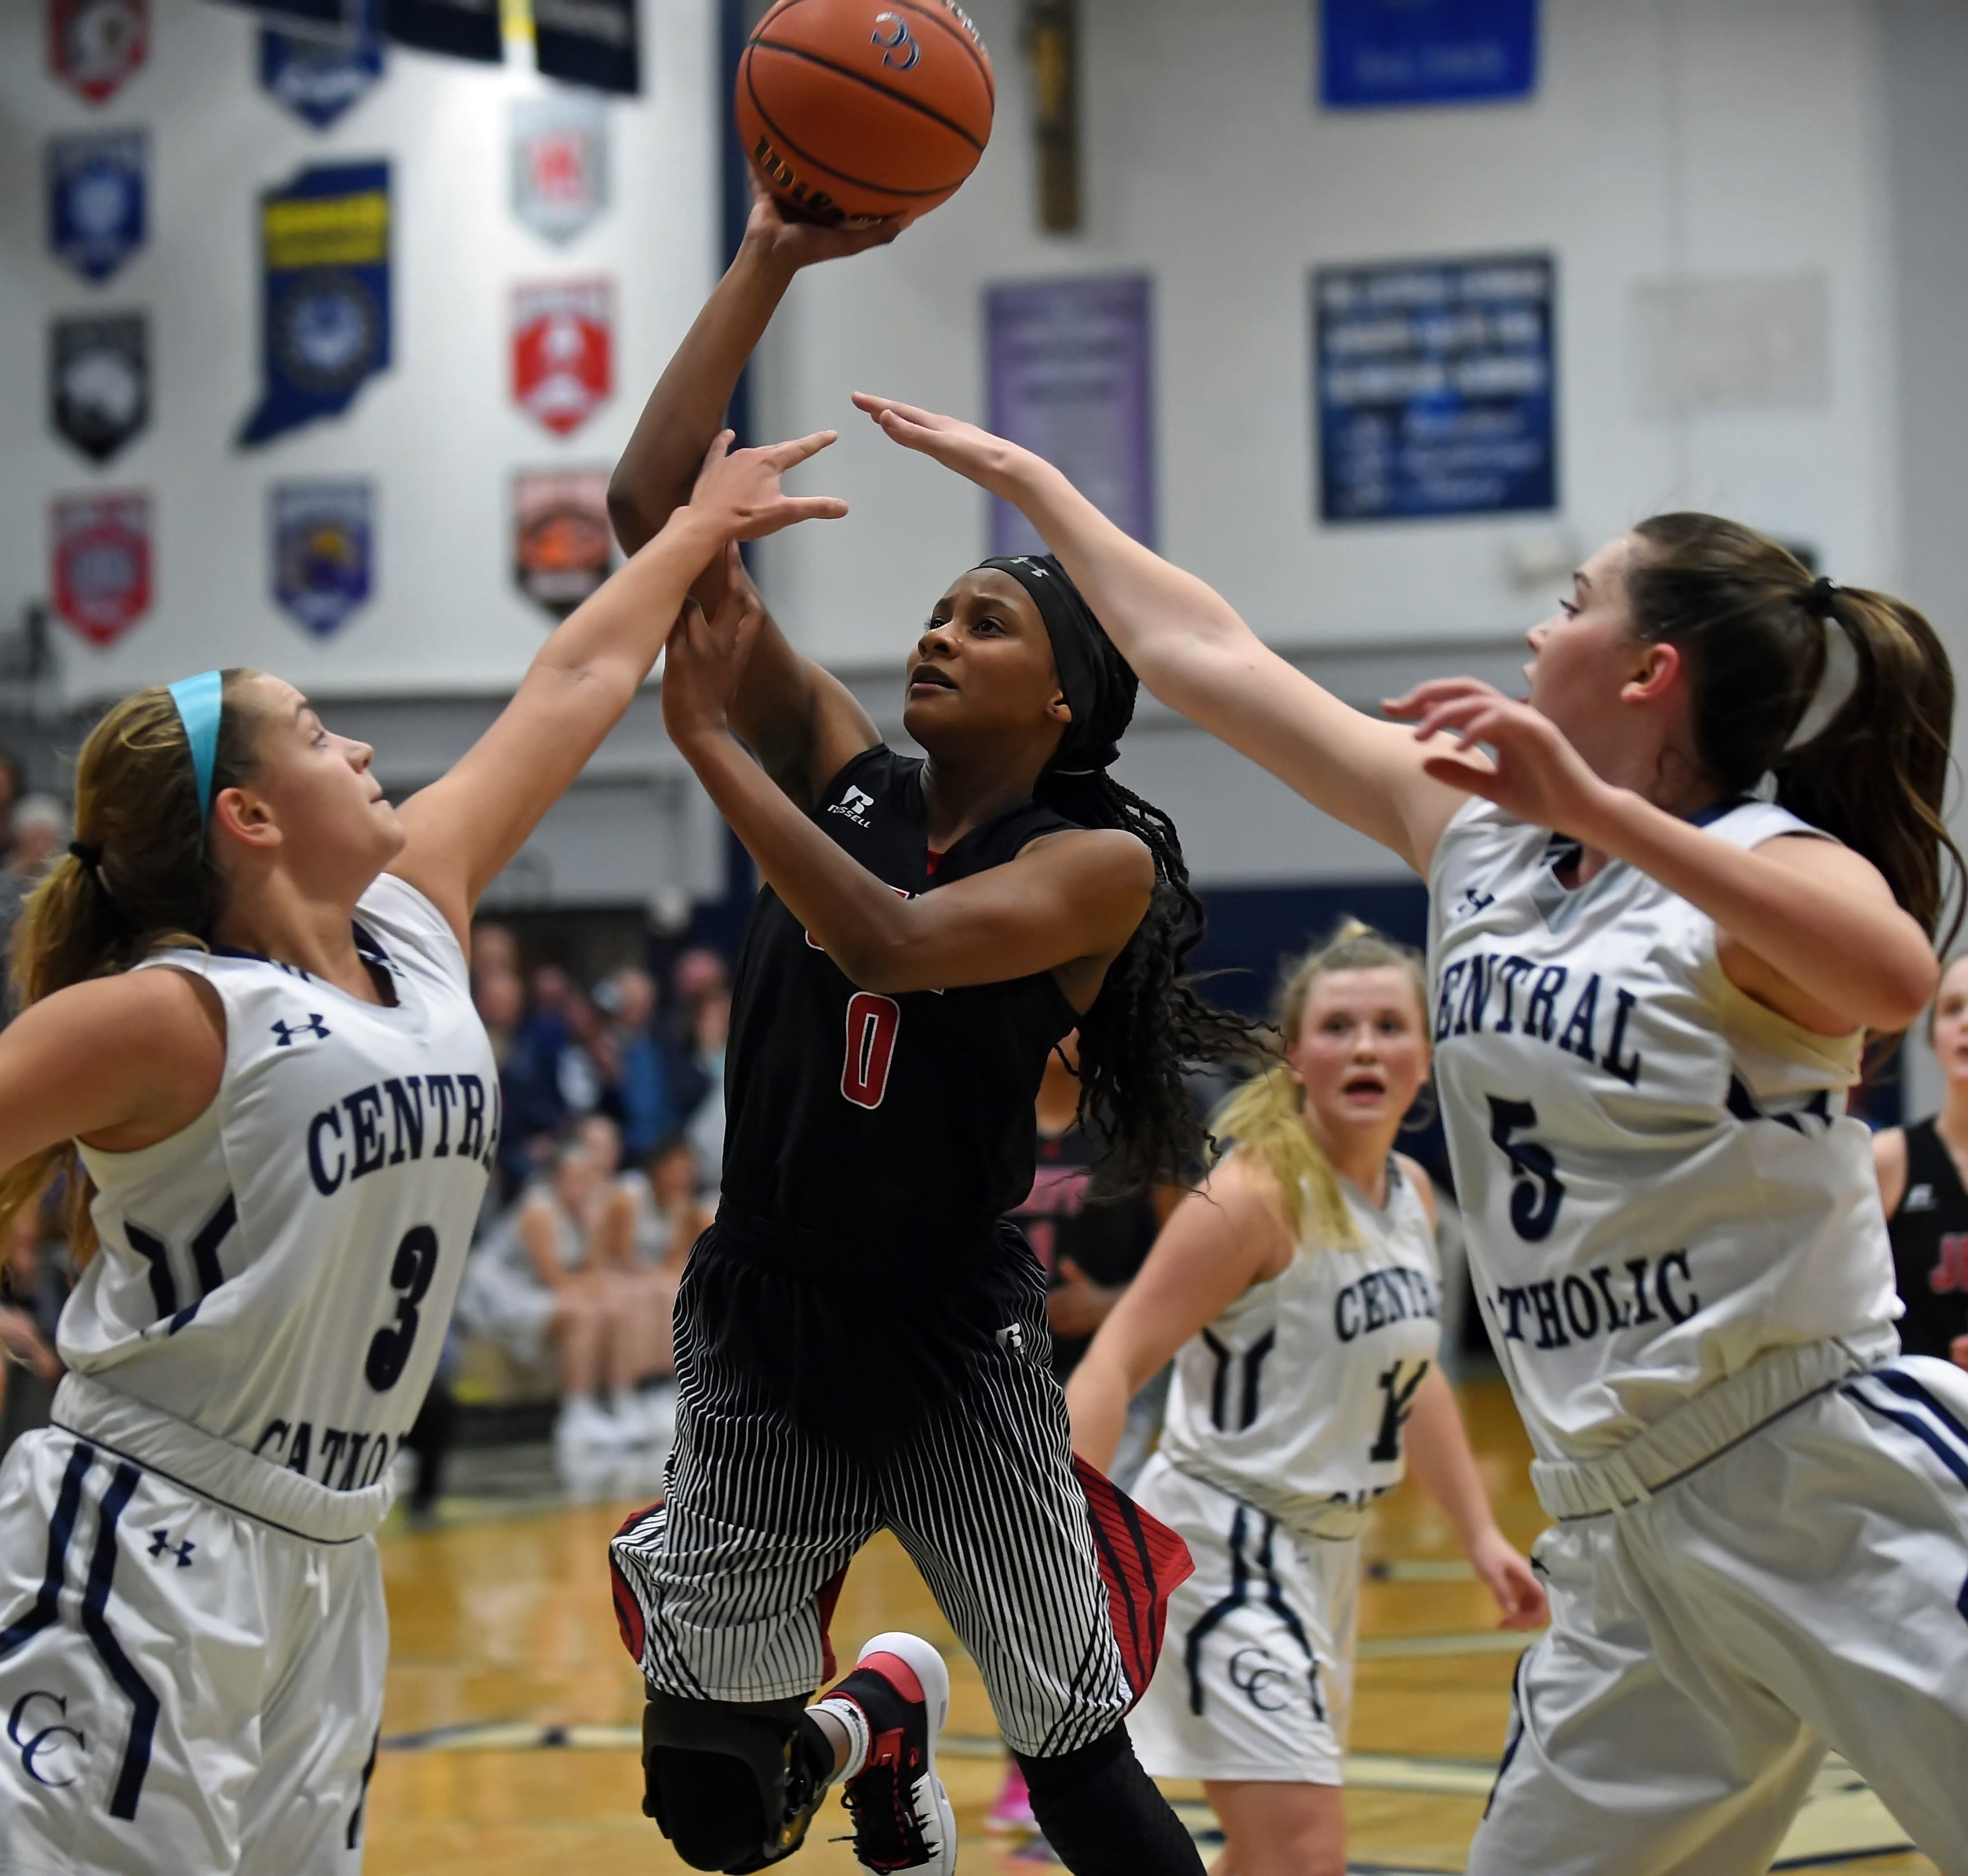 Junior point guard Kyrstin Green drives the paint for Jeff between Kaylyn Cherry and Lexi Thompson Tuesday night at Central Catholic.